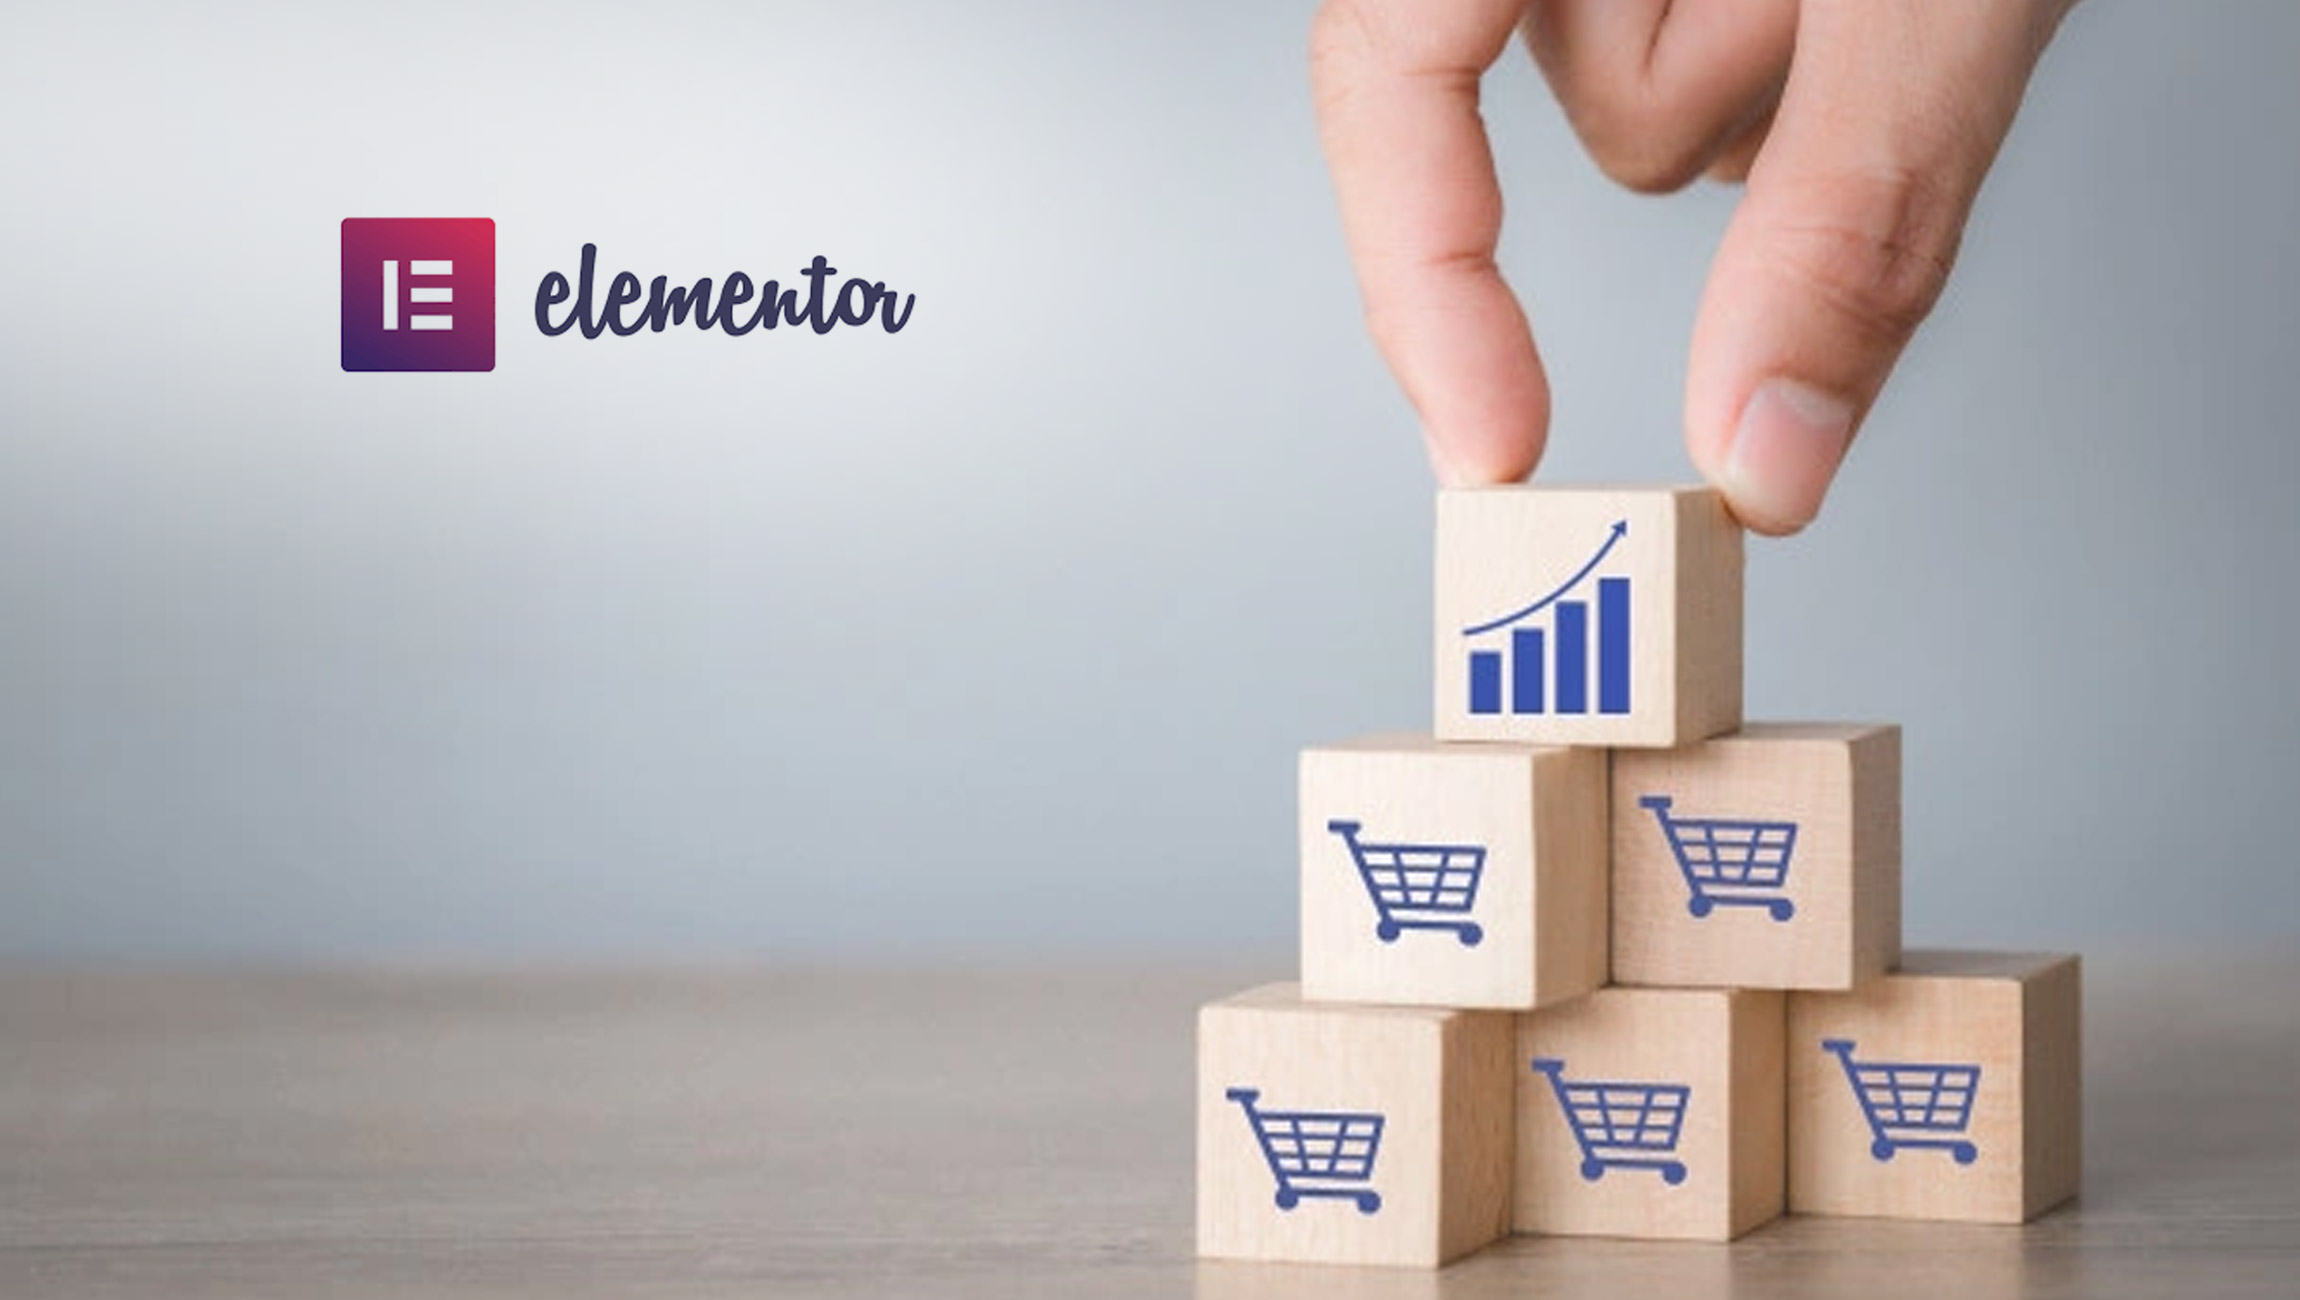 Elementor Launches PayPal Widget Buttons to Enhance E-Commerce Capabilities for Online Mobile Businesses